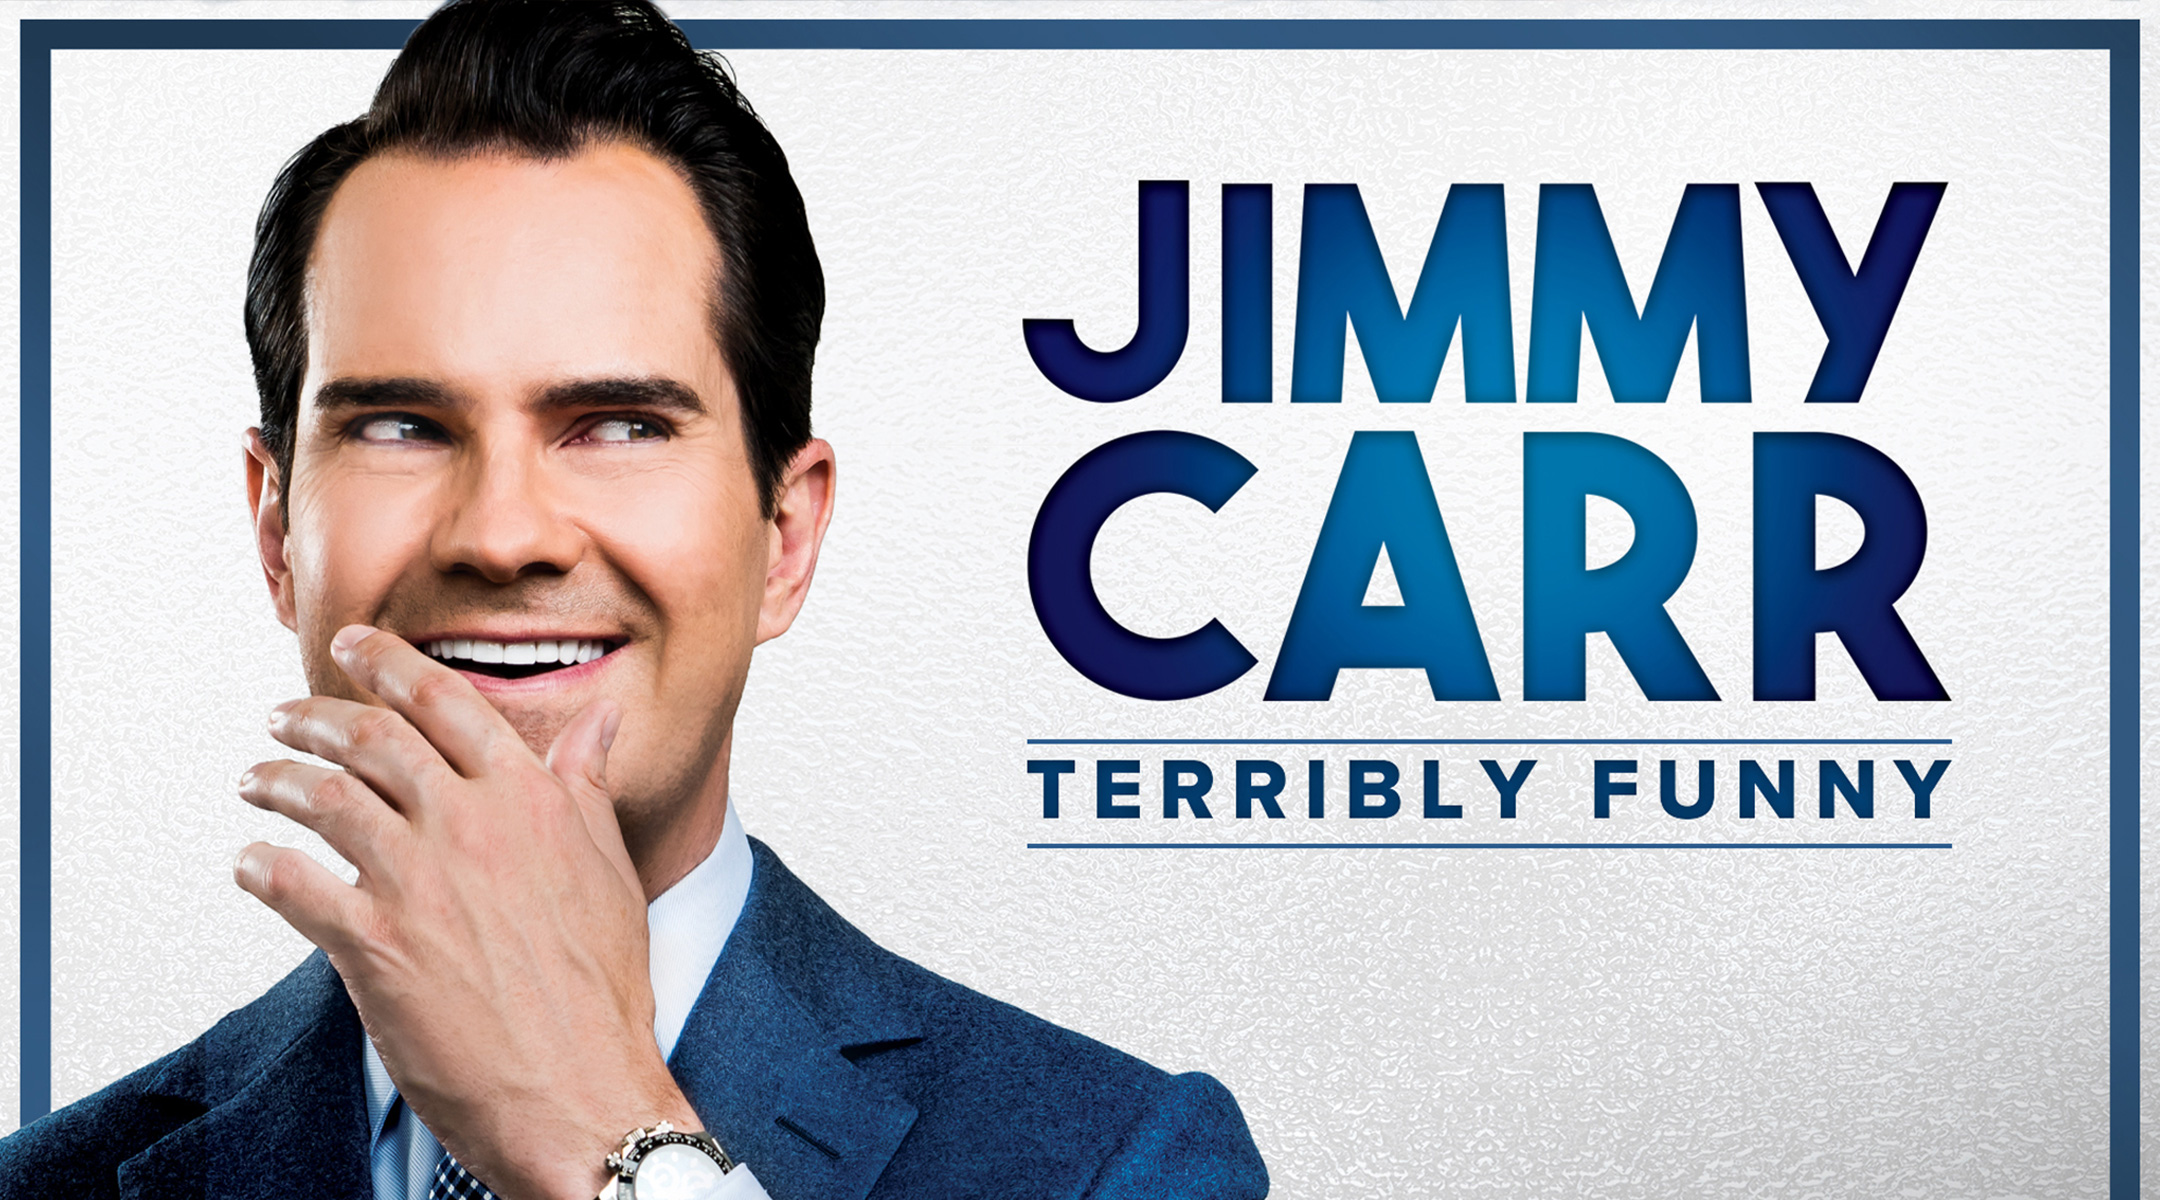 Jimmy Carr: Terribly Funny - Aberdeen - 15th Late Show